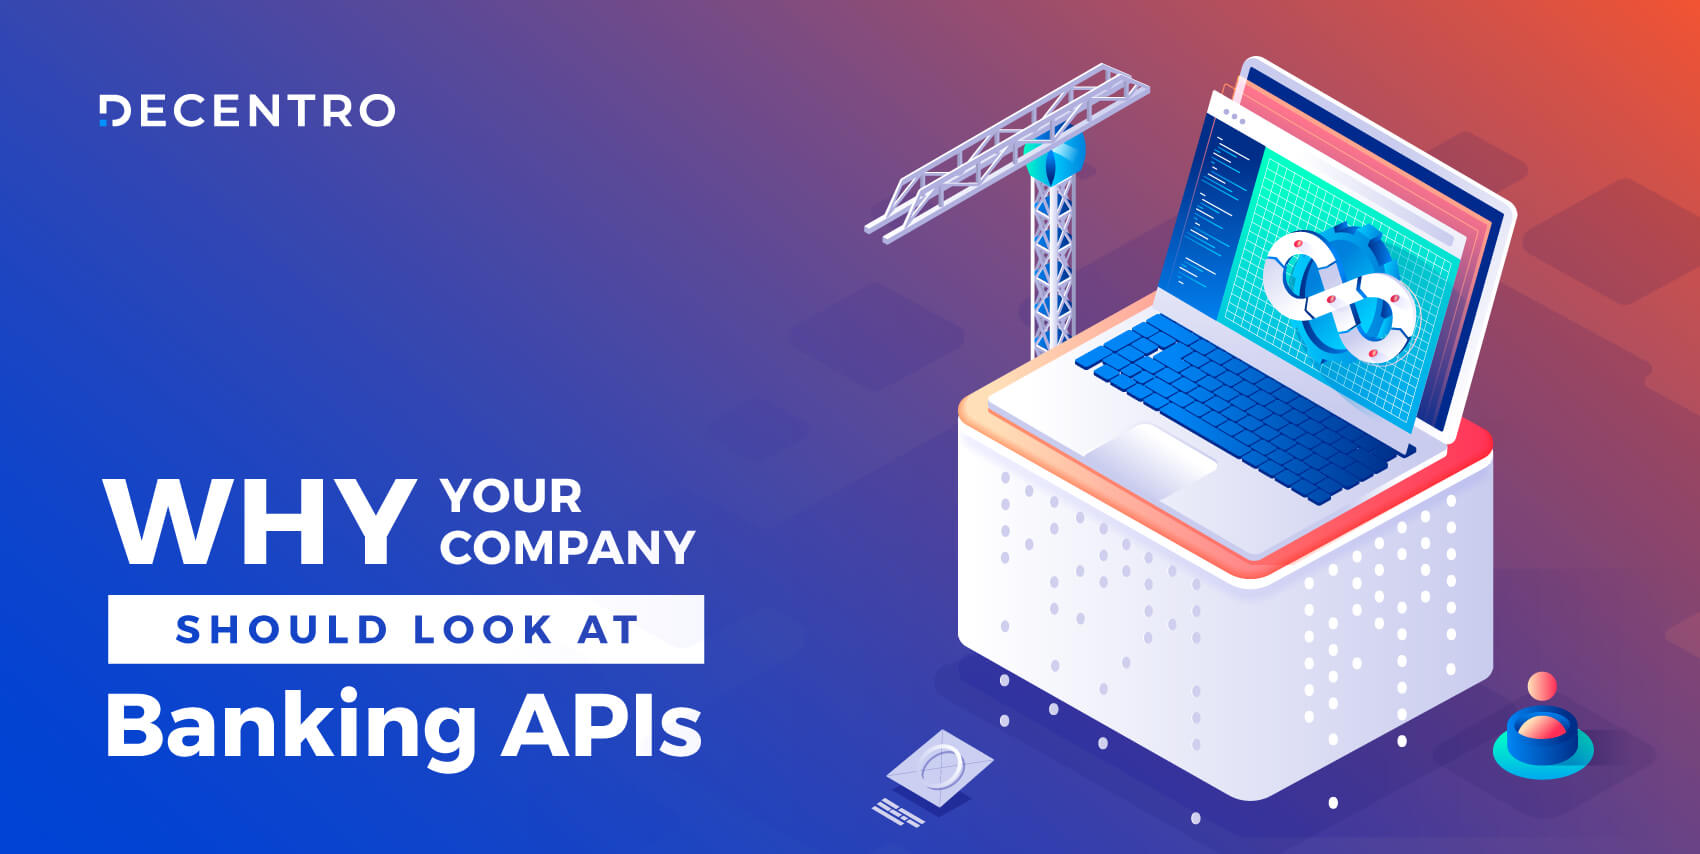 Why your company should start looking at Banking APIs.